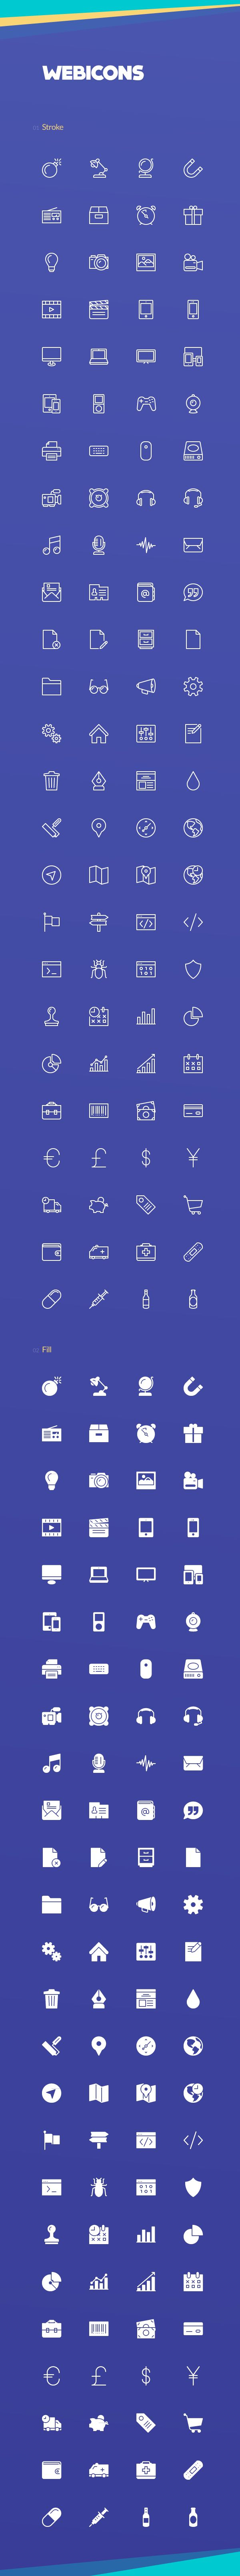 100 free icons designed by Vlad Cristea